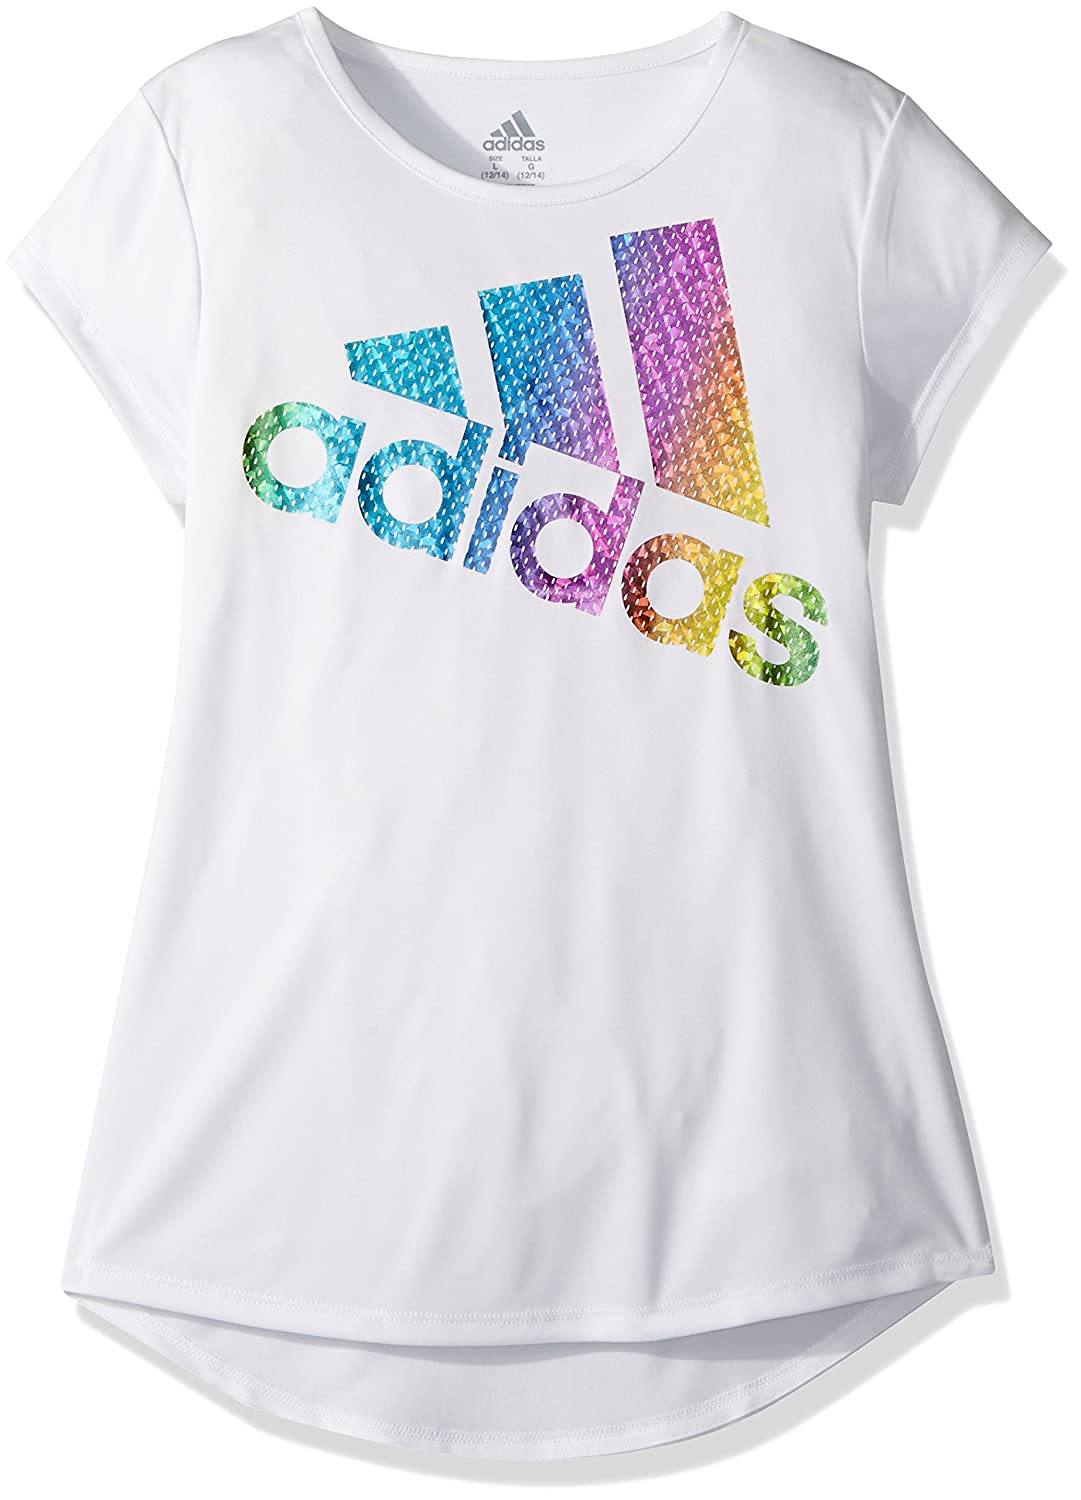 adidas Girls' Short Sleeve Graphic Tee Shirts: Amazon.co.uk